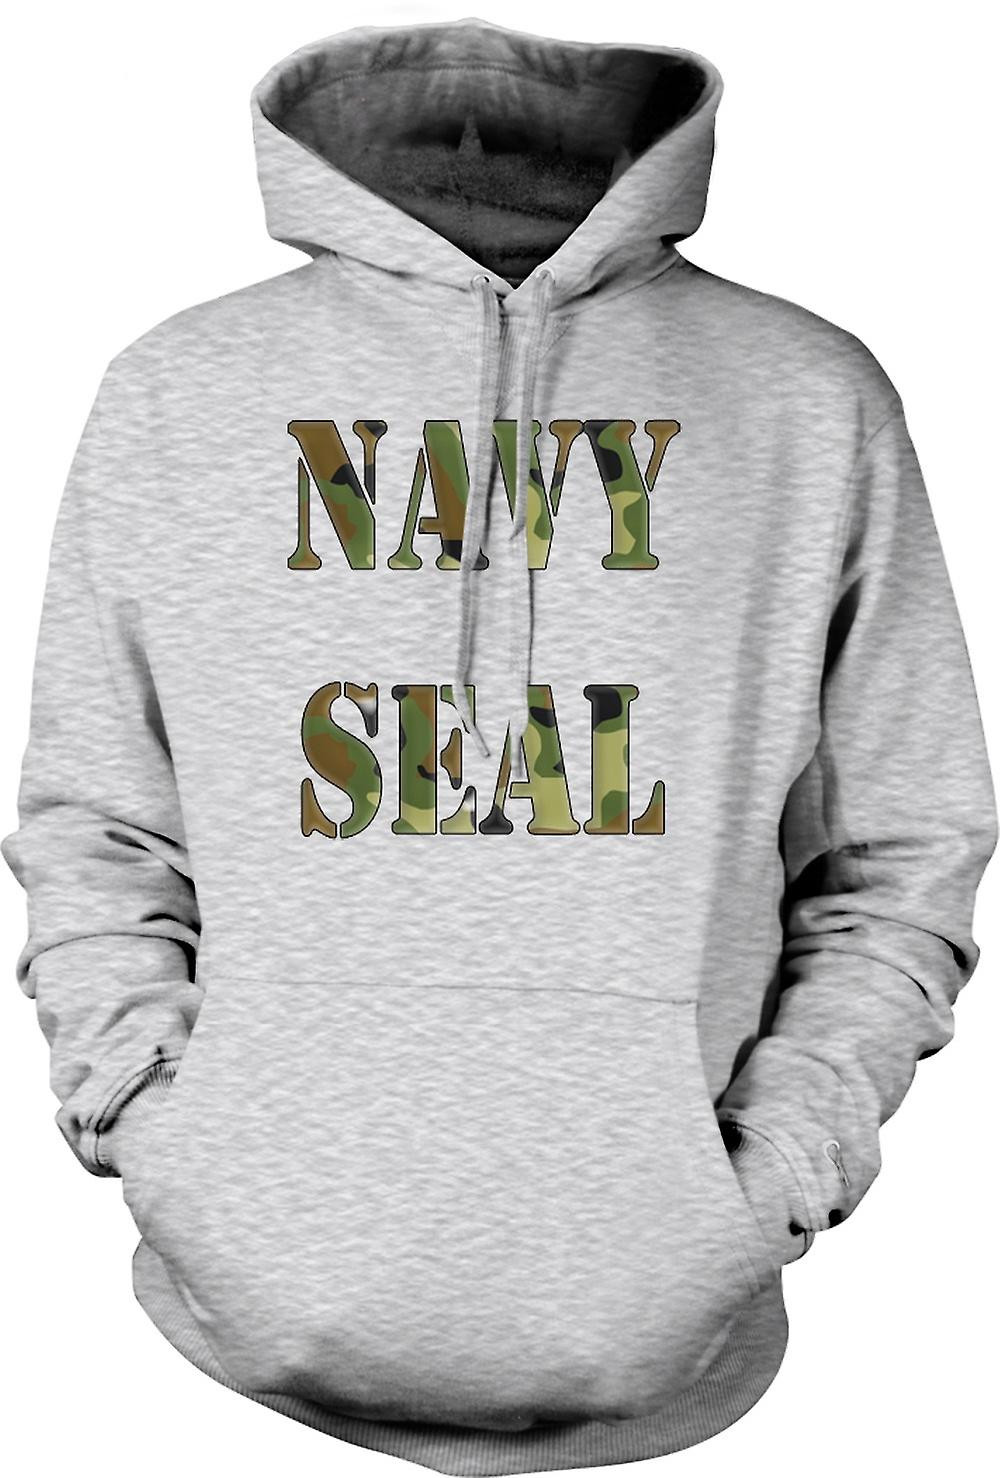 Mens Hoodie - US Navy Seals Elite